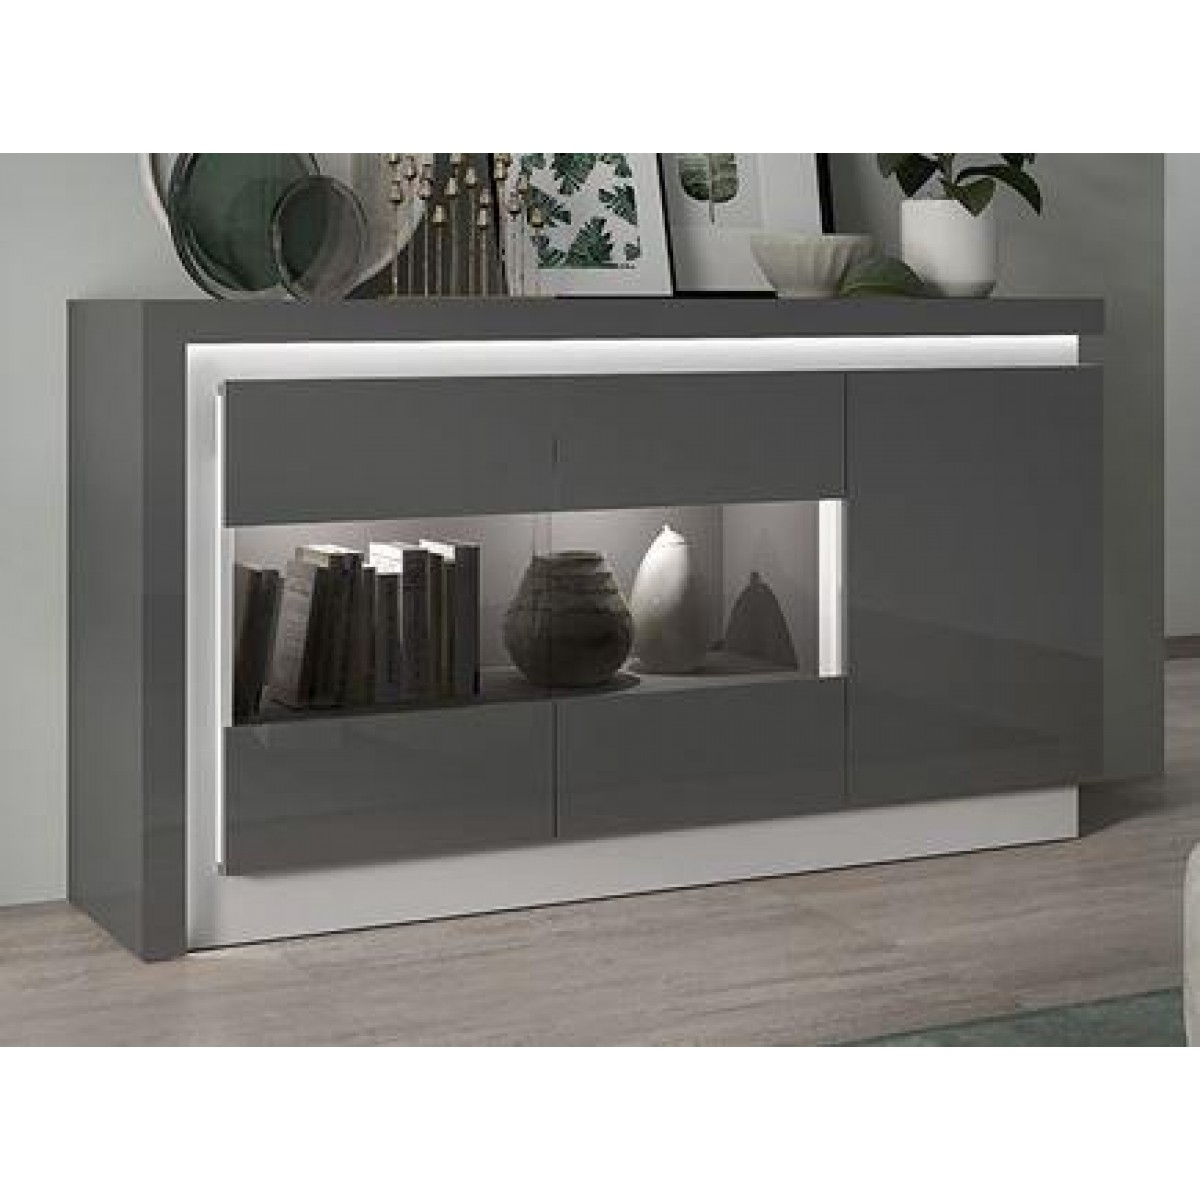 Sideboard Modern Modern Home - Lyon 2 Door 3 Drawer Sideboard Grey Gloss - Free Next Day Delivery